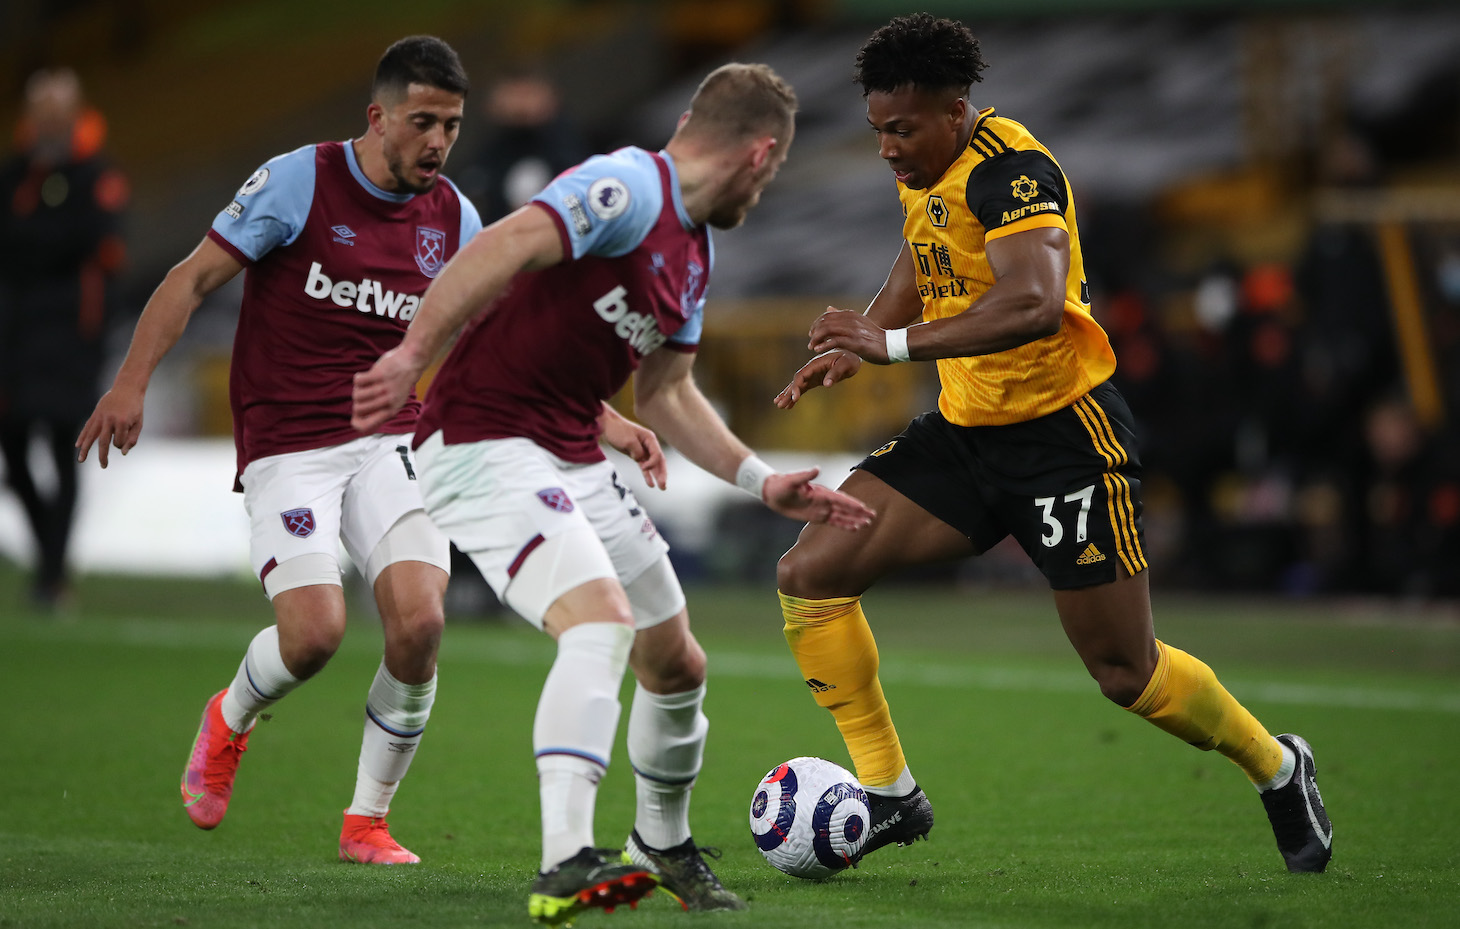 Adama Traore of Wolverhampton Wanderers is challenged by Pablo Fornals and Vladimir Coufal of West Ham during the Premier League match between Wolverhampton Wanderers and West Ham United at Molineux on April 05, 2021 in Wolverhampton, England.